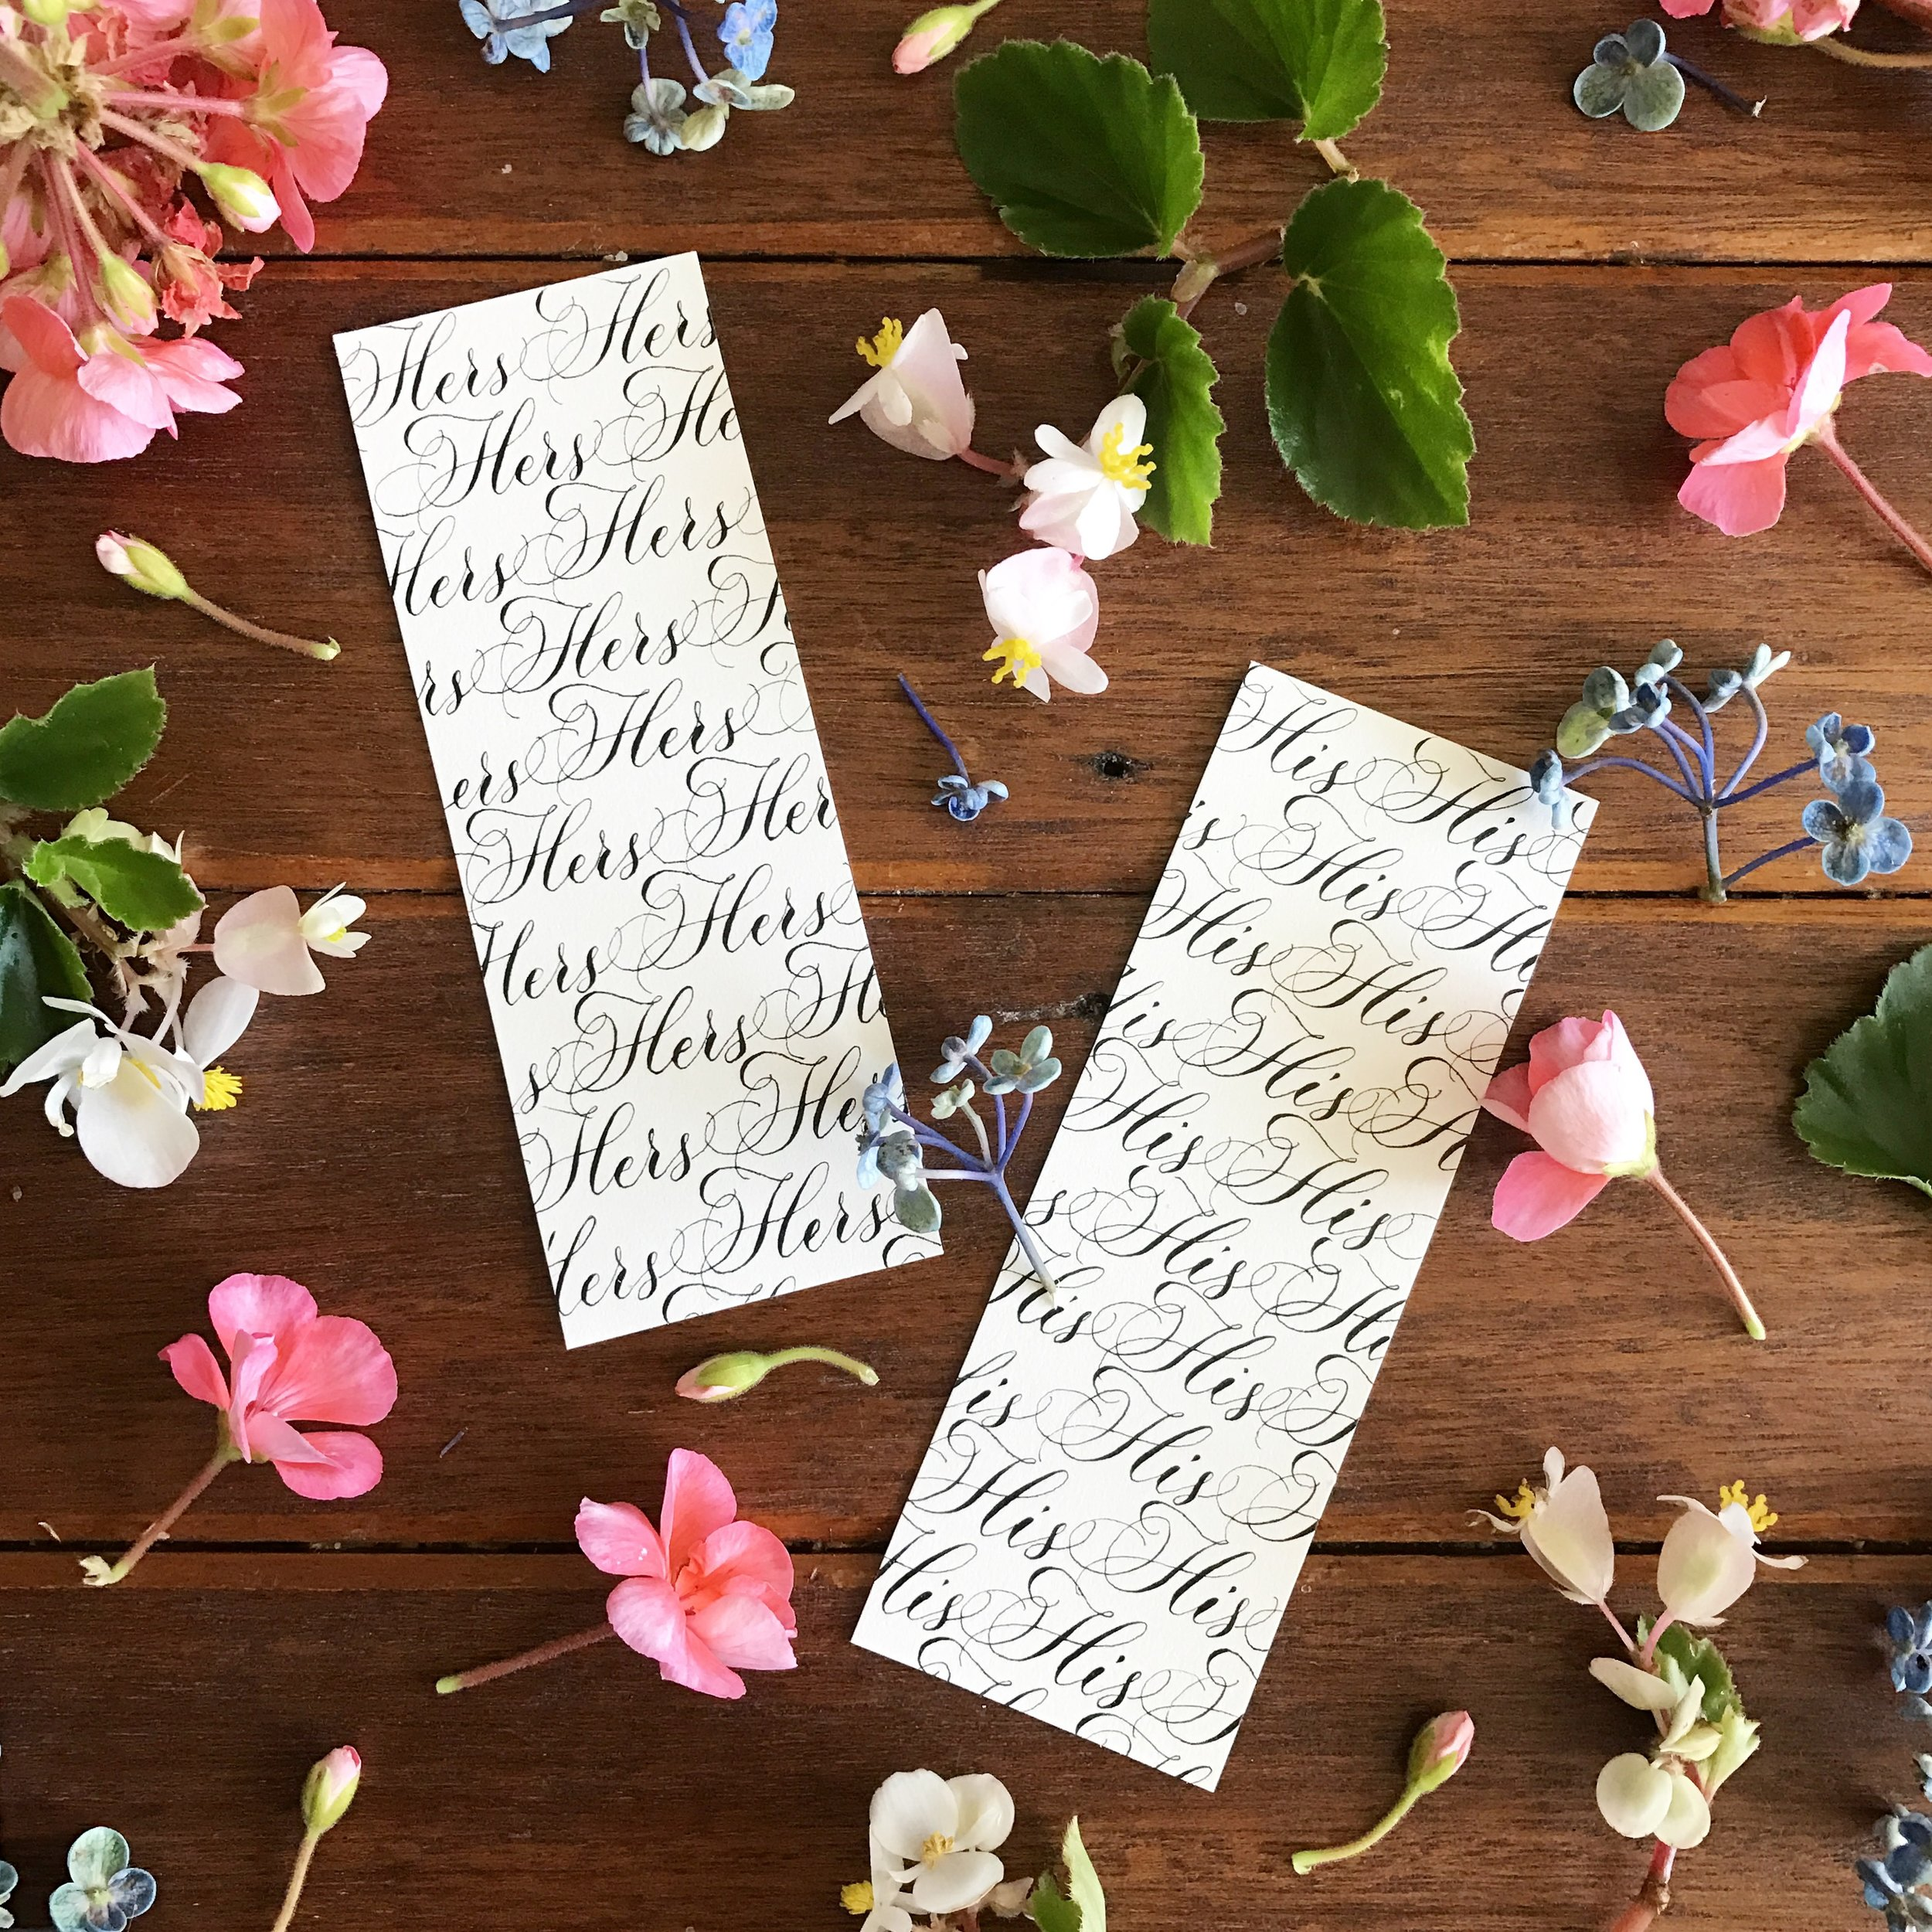 His and Hers bookmarks